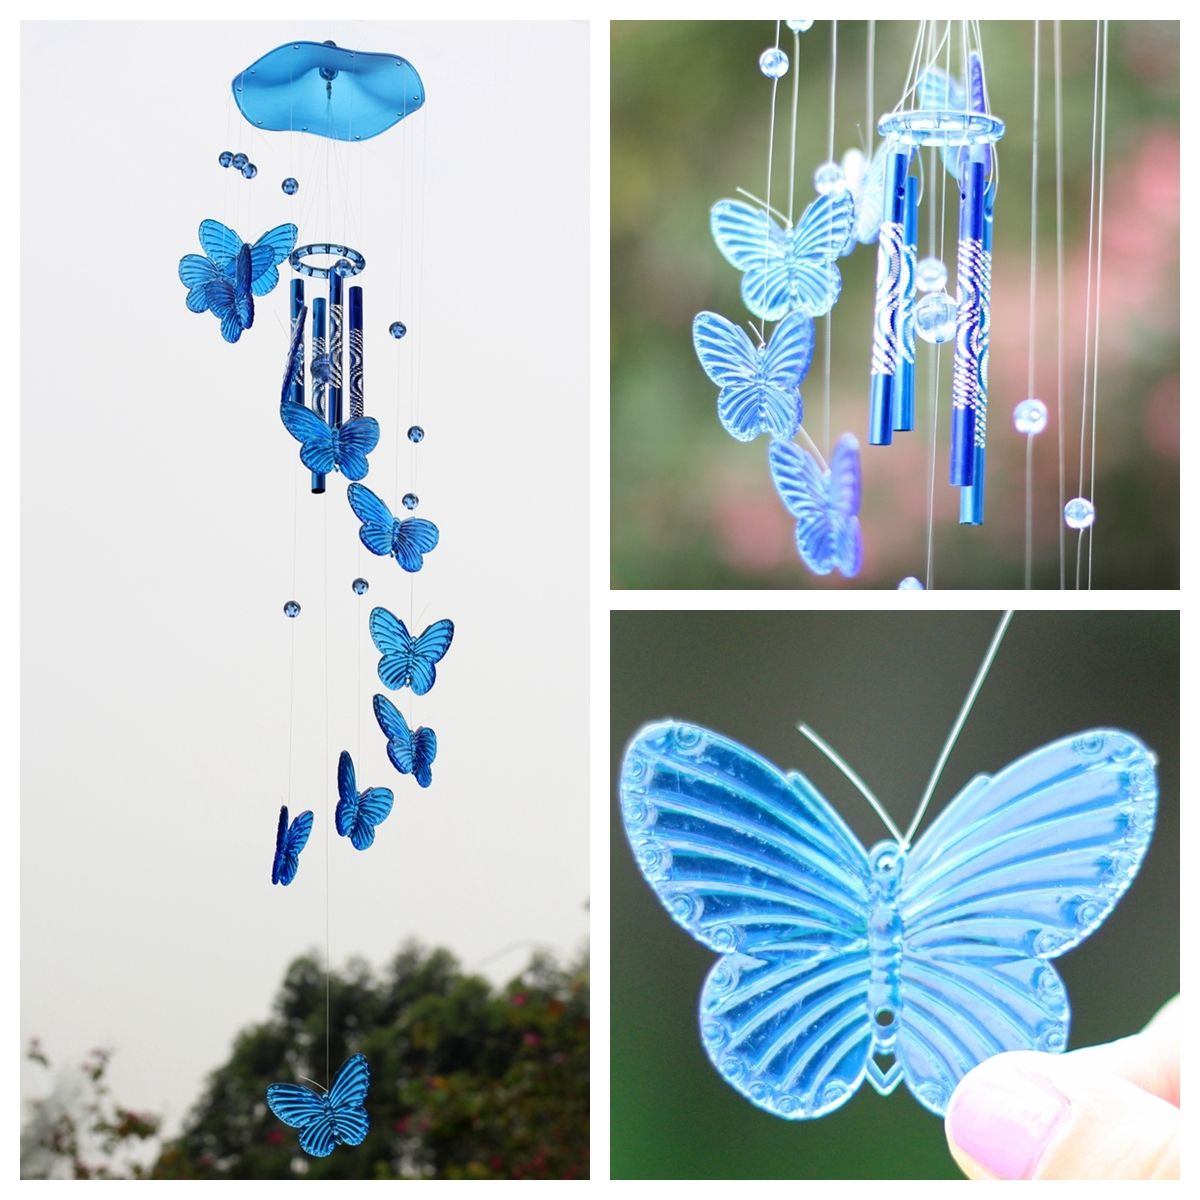 Crystal butterfly wind chime bell garden ornament gift for Outdoor butterfly ornaments